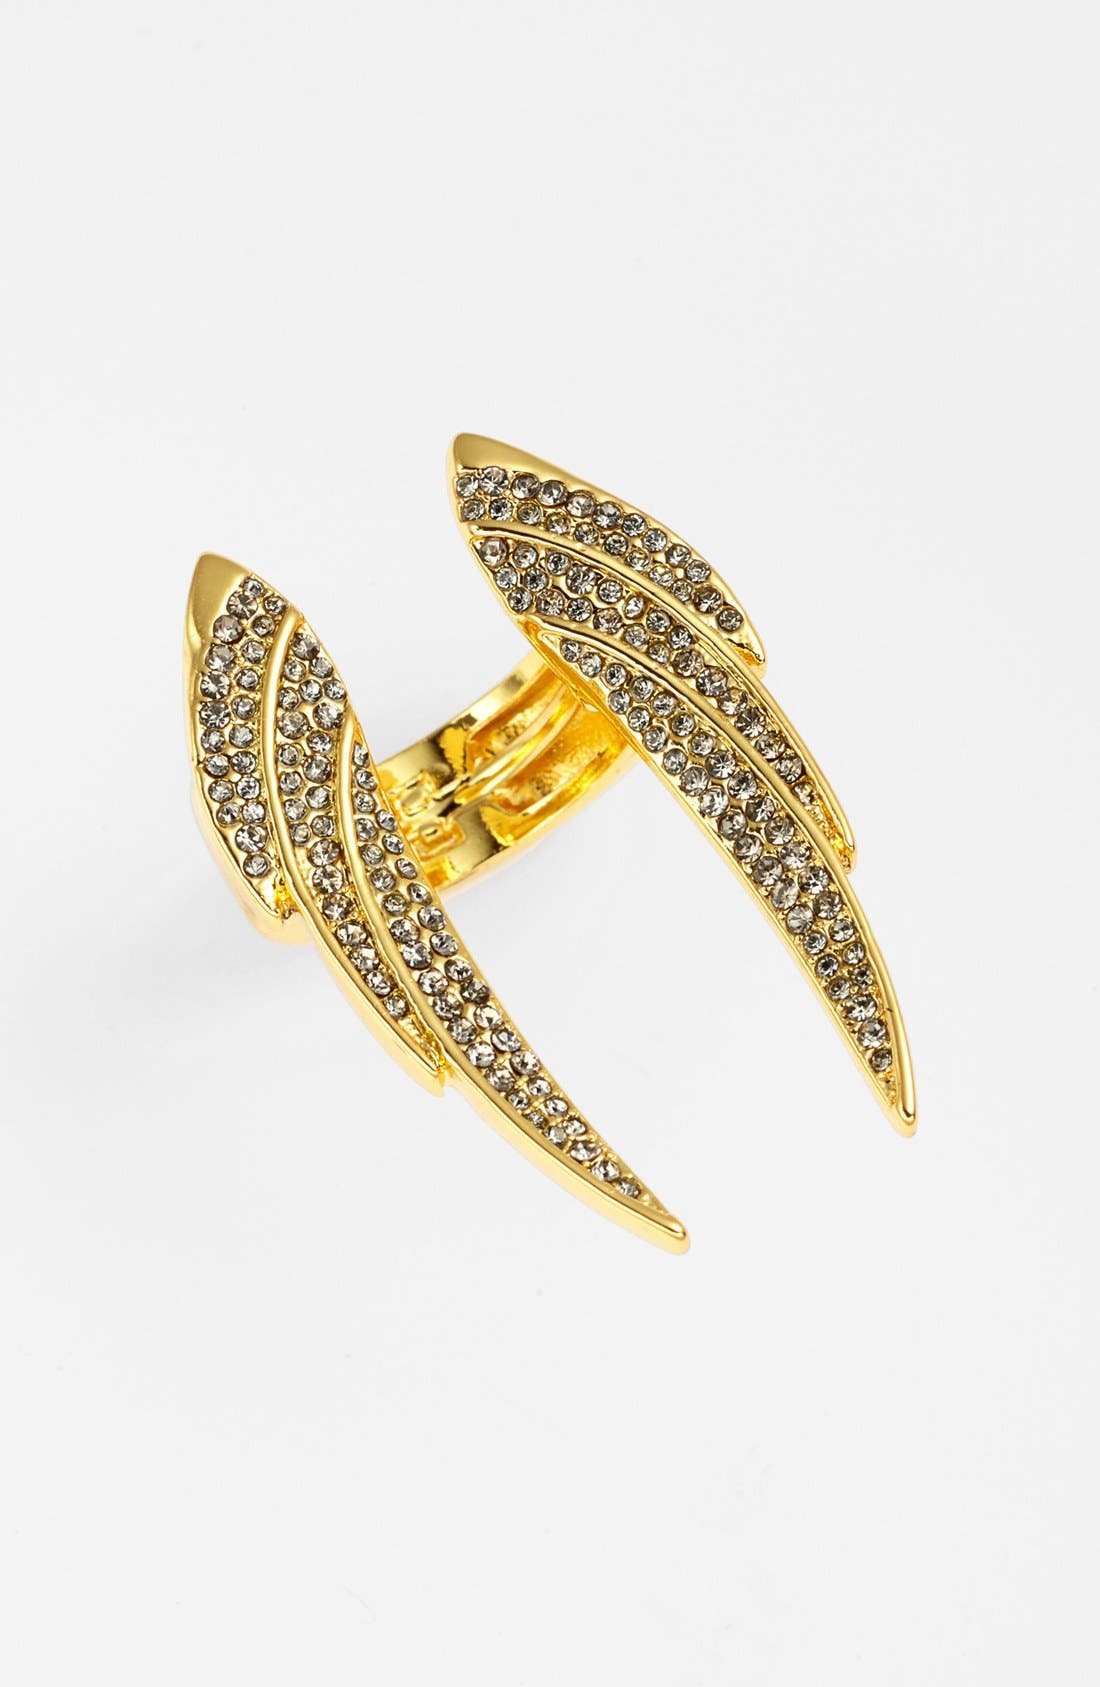 Alternate Image 1 Selected - Vince Camuto 'Flights of Fantasy' Pavé Wing Ring